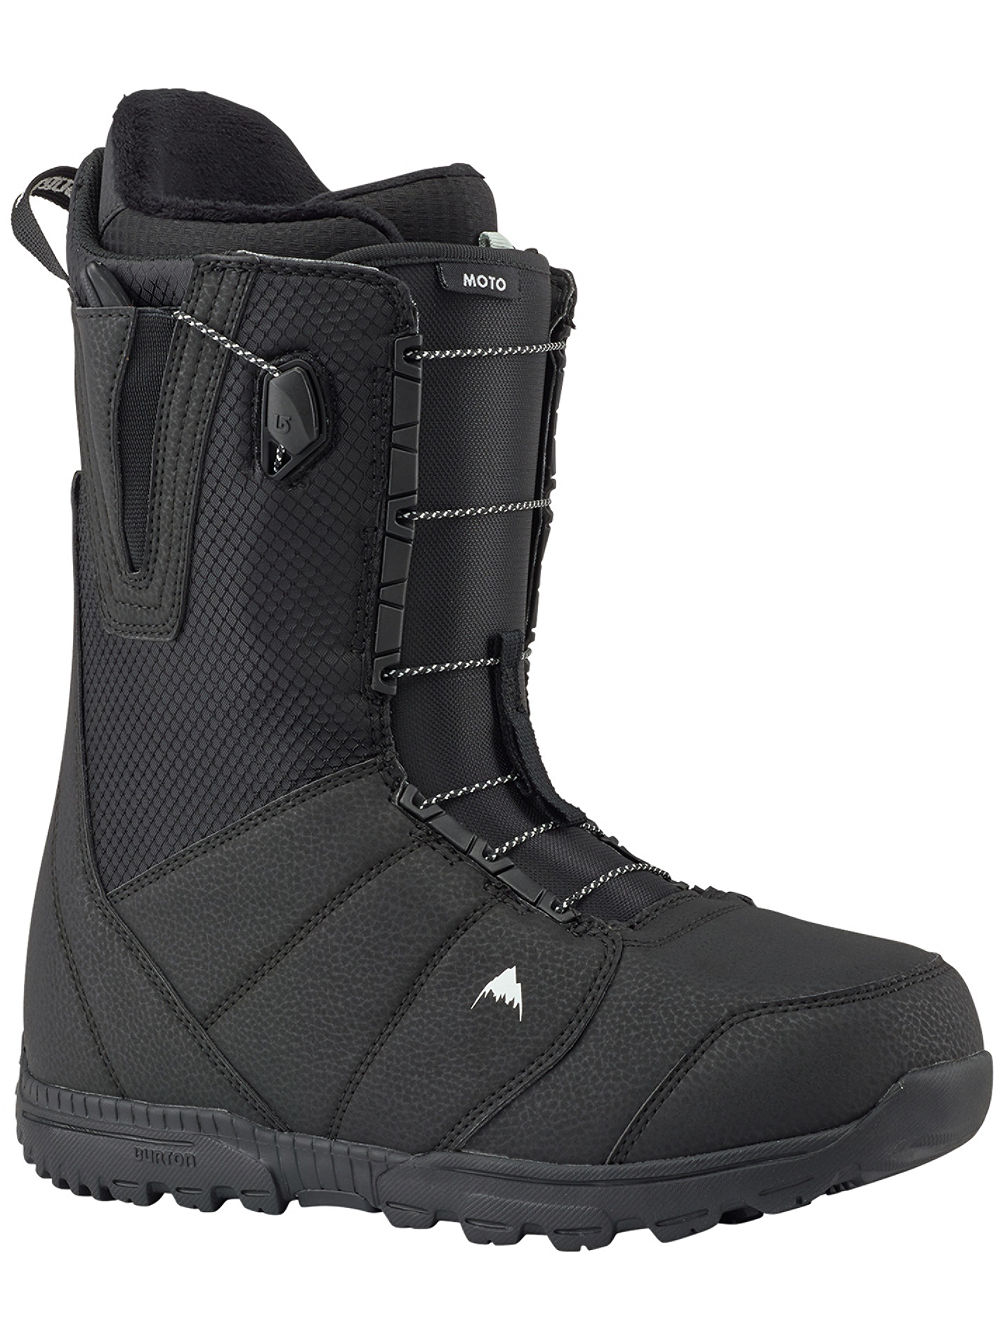 Moto Snowboard-Boots